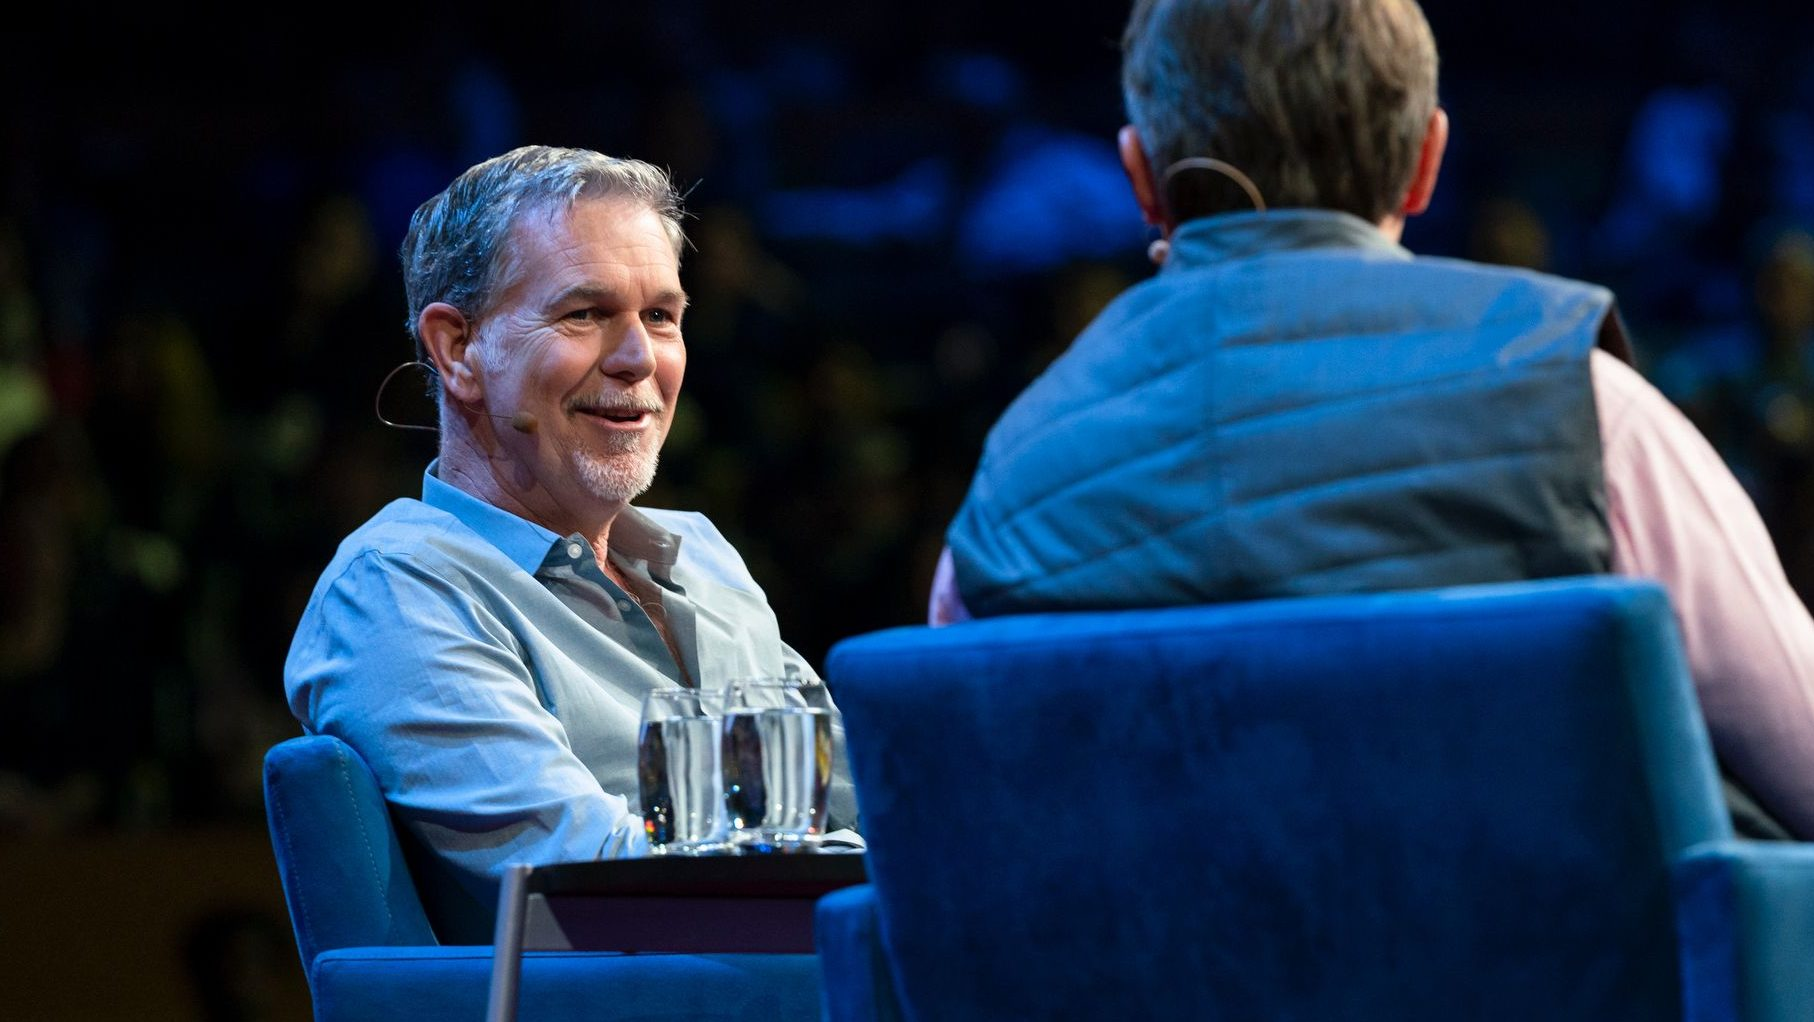 Netflix CEO Reed Hastings at TED 2018.